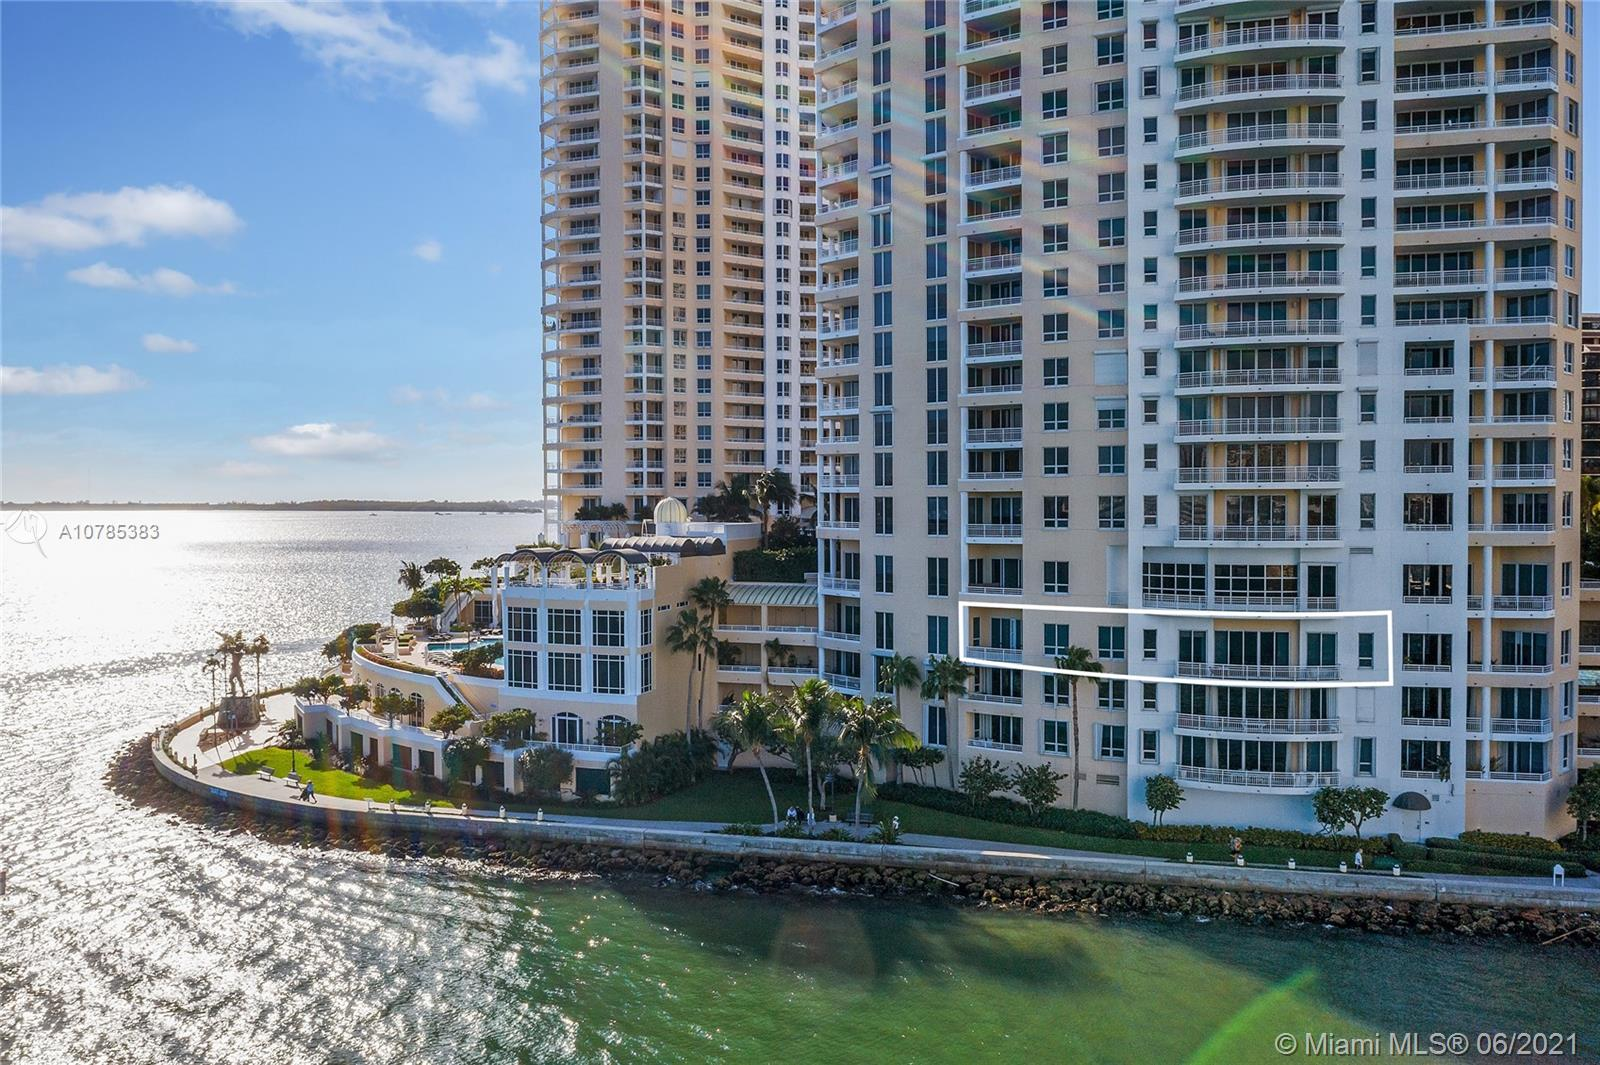 THIS WATERFRONT UNIT FEATURES FOUR BEDROOMS AND FOUR AND HALF BATHS. Over 3000 square feet of living space. Live in one of the few units that are COVID-19 safe. This fantastically remodeled apartment in the prestigious Tequesta III has access directly form the garage to your condo unit. Park your car in the same floor as your unit and walk directly into your home. No need to enter through the lobby or take elevators. This apartment is like living in a house, but with all the amenities of a luxury building. Since the condo is located on the 4th Floor, it is so close to the water that it has the feeling of looking our from a yacht. Unit comes with 4 parking spaces, 3 storage units and 3 cabanas. Pets are allowed with some restrictions. PRICE JUST REDUCED!